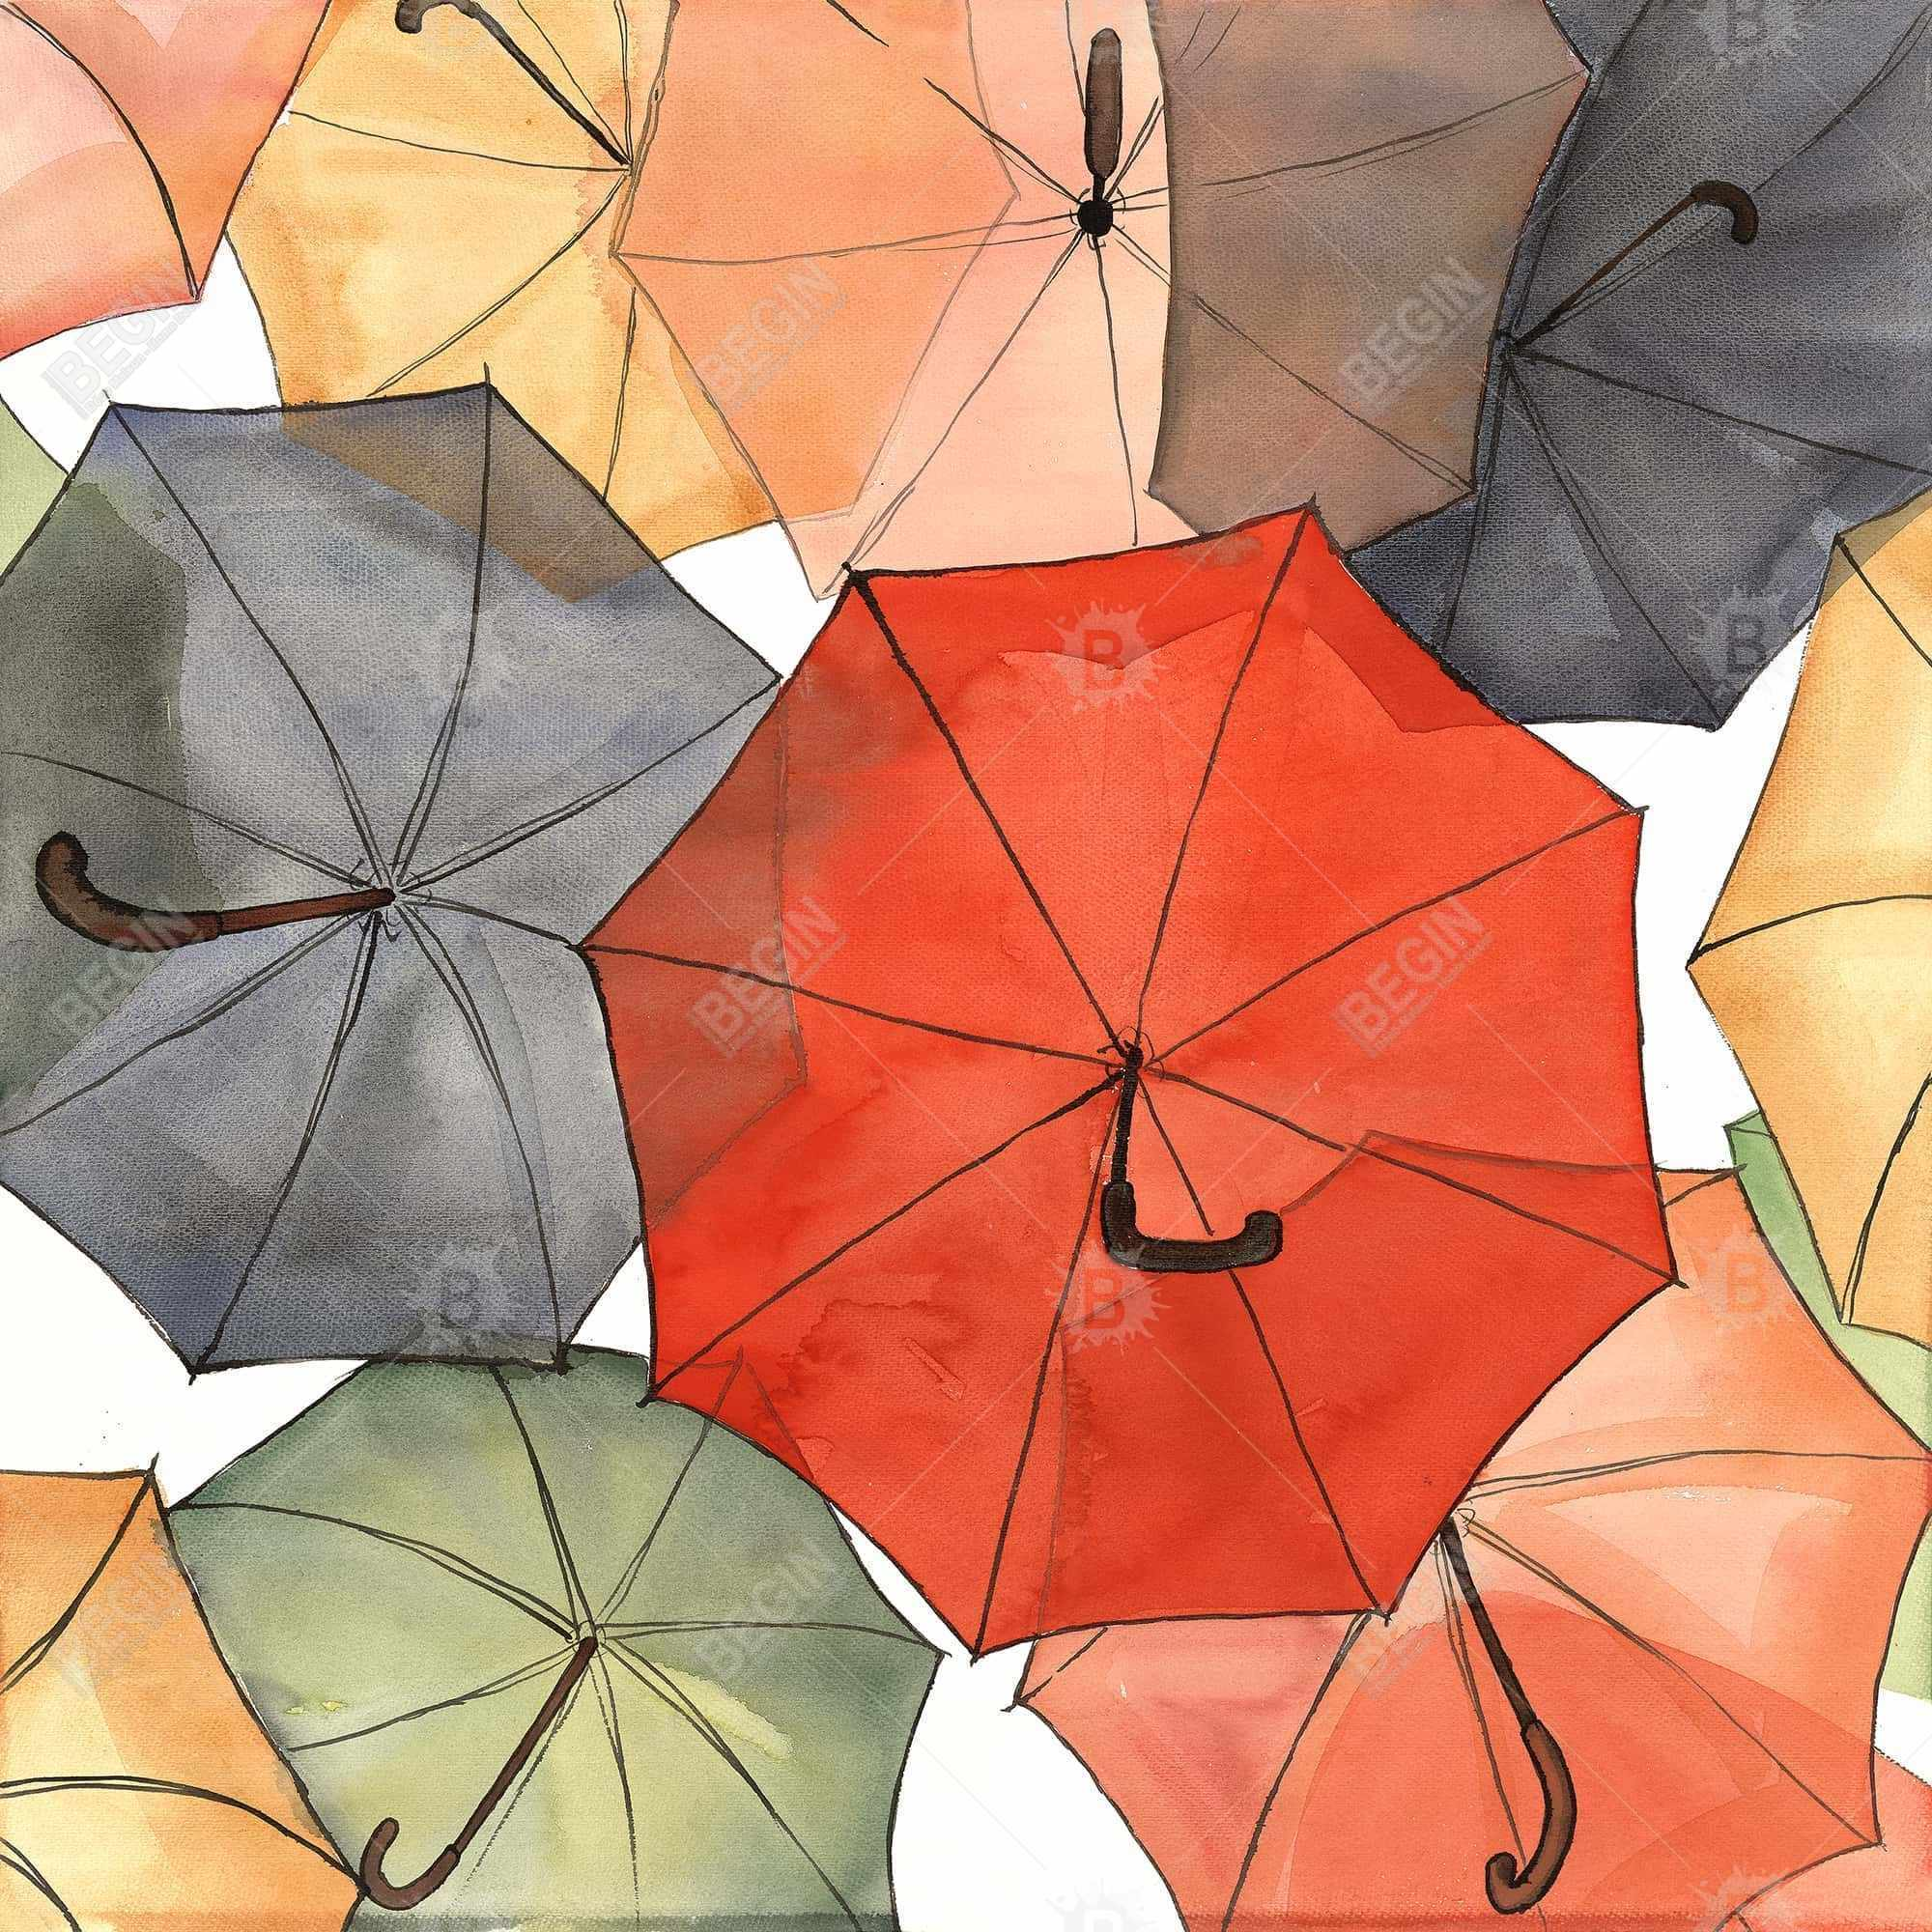 The umbrellas of petit champlain